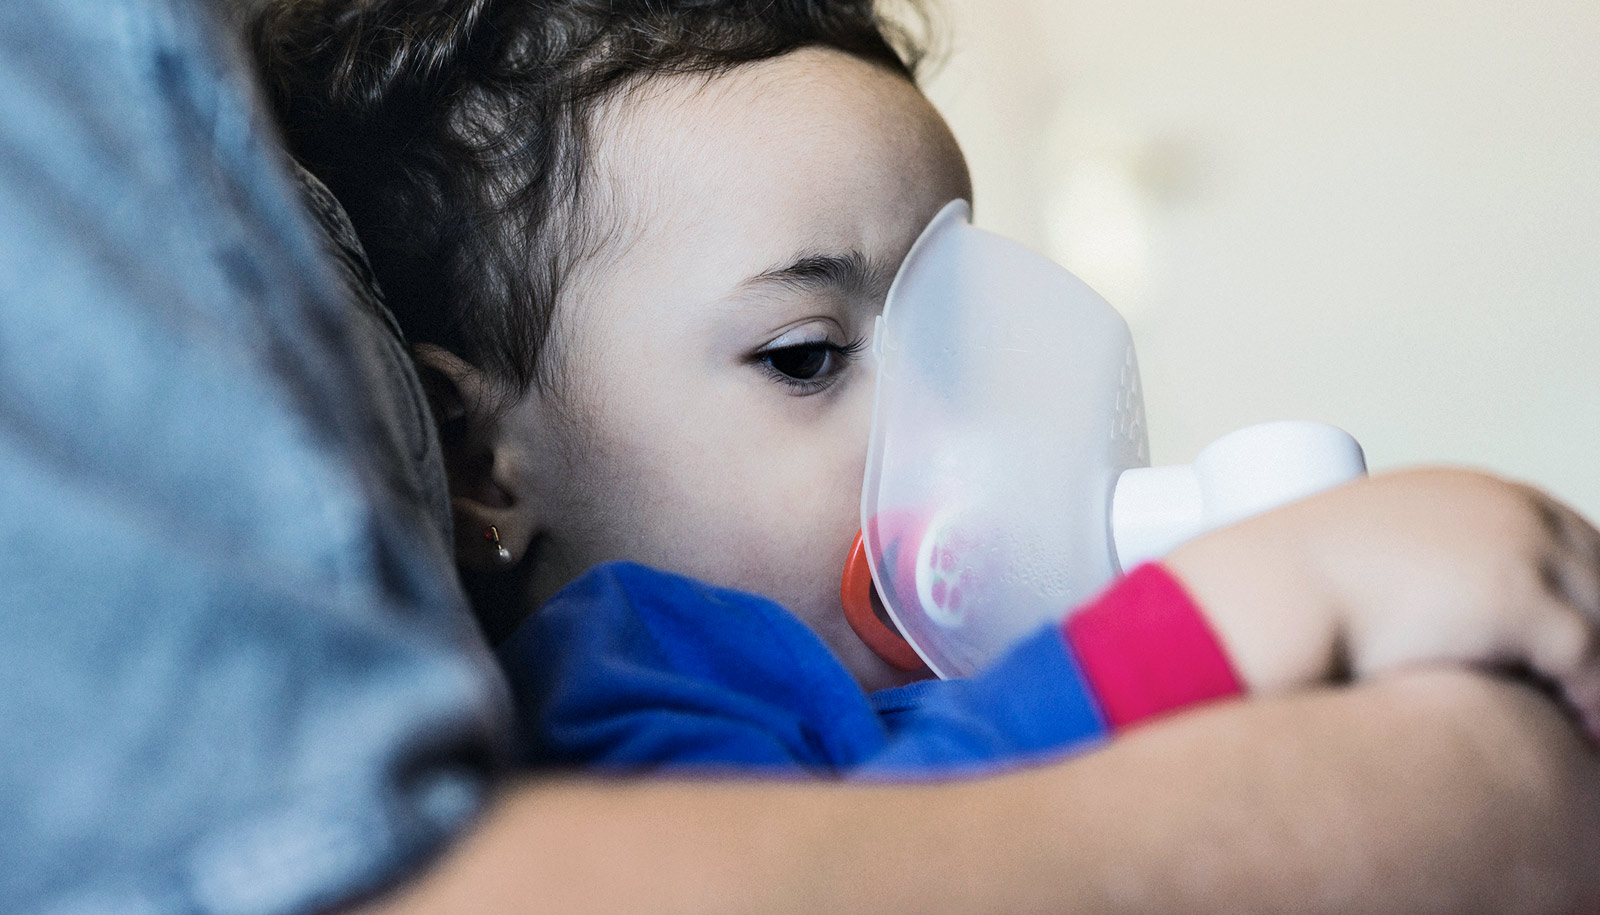 children with asthma Tobacco~more than 40% of children who go to the emergency room for asthma live with smokers for children who have asthma, however, the frequency and severity of asthma attacks improves greatly if smoke exposure stops.